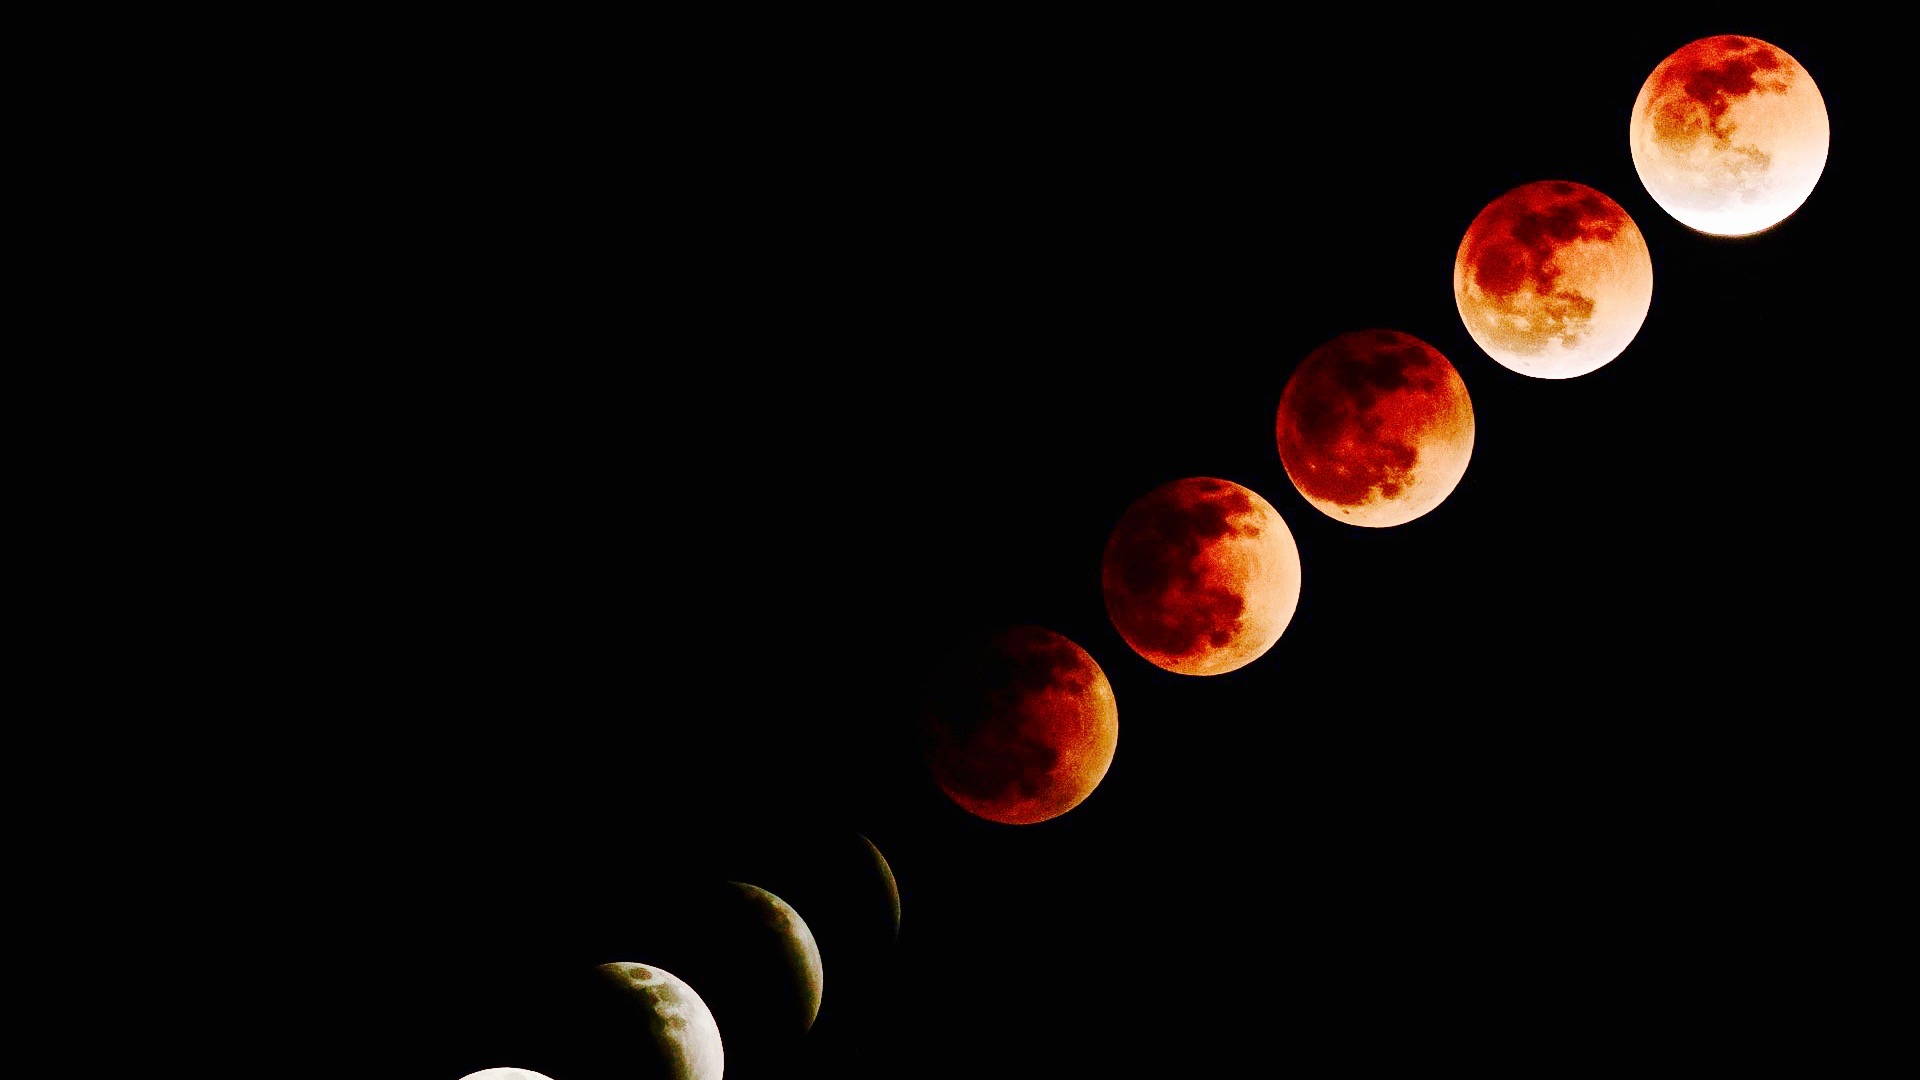 Phases of the blood moon.